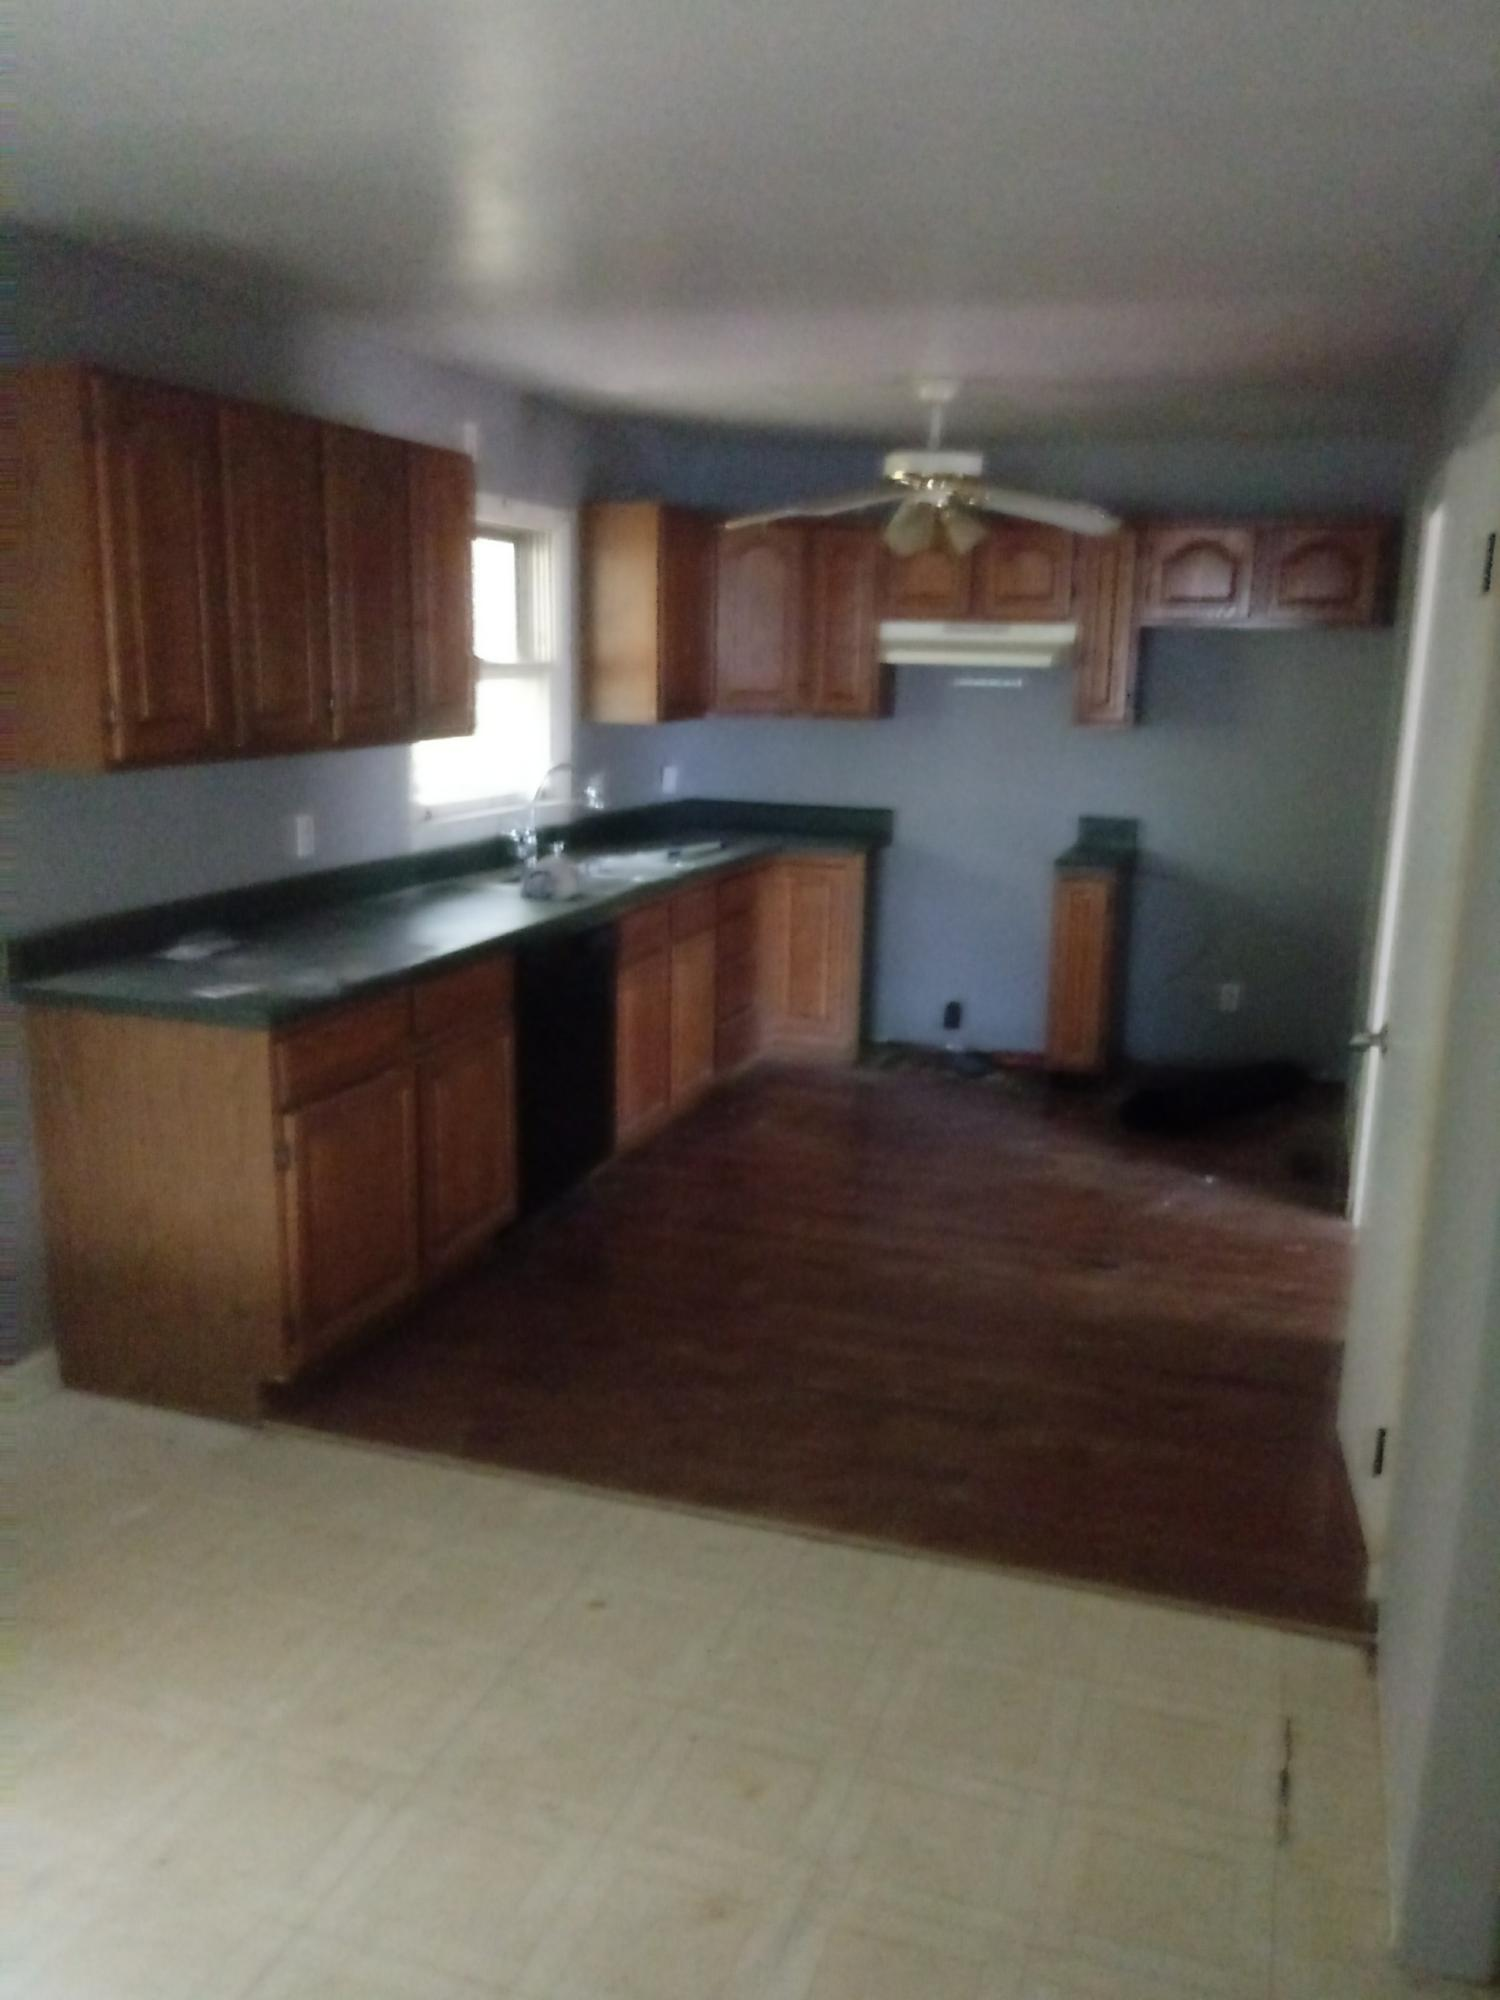 157 Tori Kait, Powell, Tennessee, United States 37849, 3 Bedrooms Bedrooms, ,1 BathroomBathrooms,Single Family,For Sale,Tori Kait,1099132